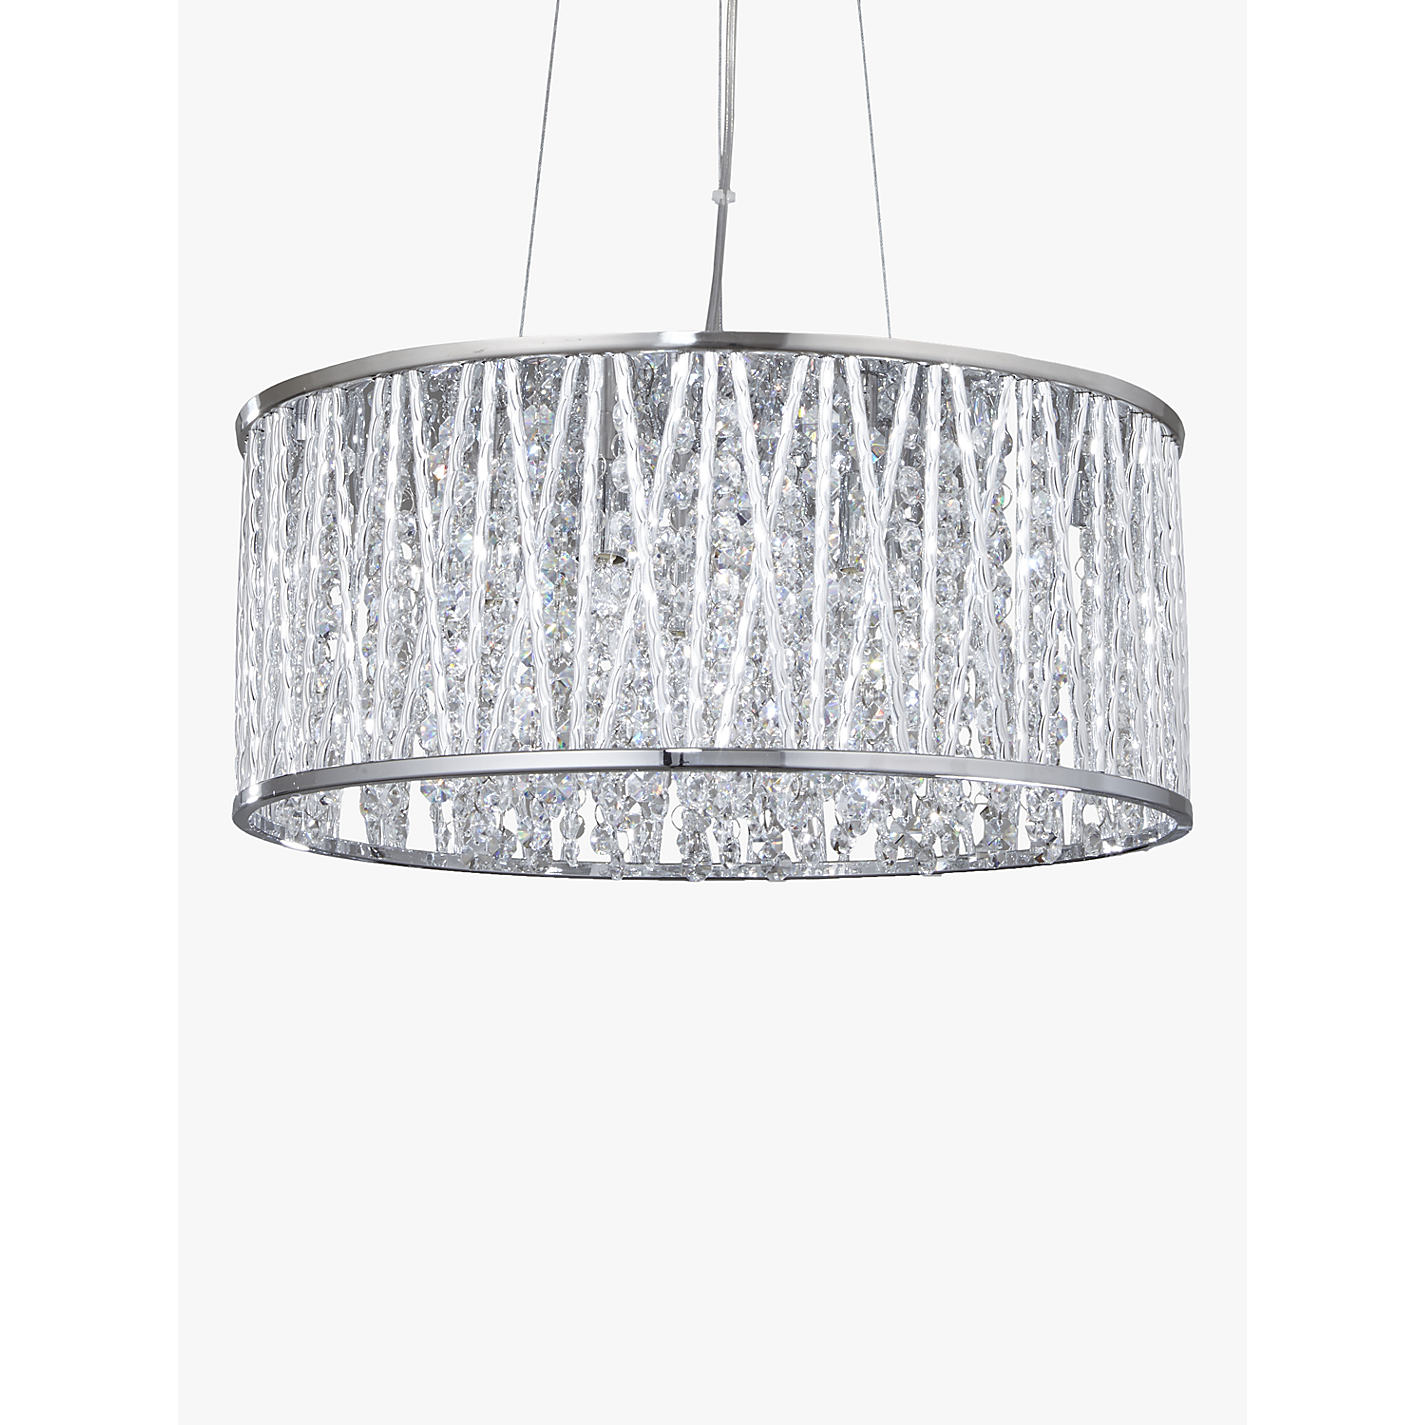 Buy john lewis emilia drum crystal pendant light john lewis buy john lewis emilia drum crystal pendant light online at johnlewis aloadofball